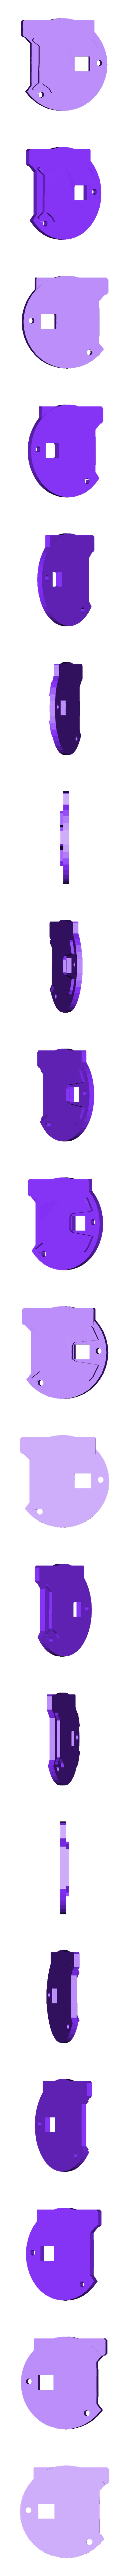 Sp_drone_cam_shell_cover.stl Download free STL file Runcam Split gimbal arm... • 3D printing template, mwilmars